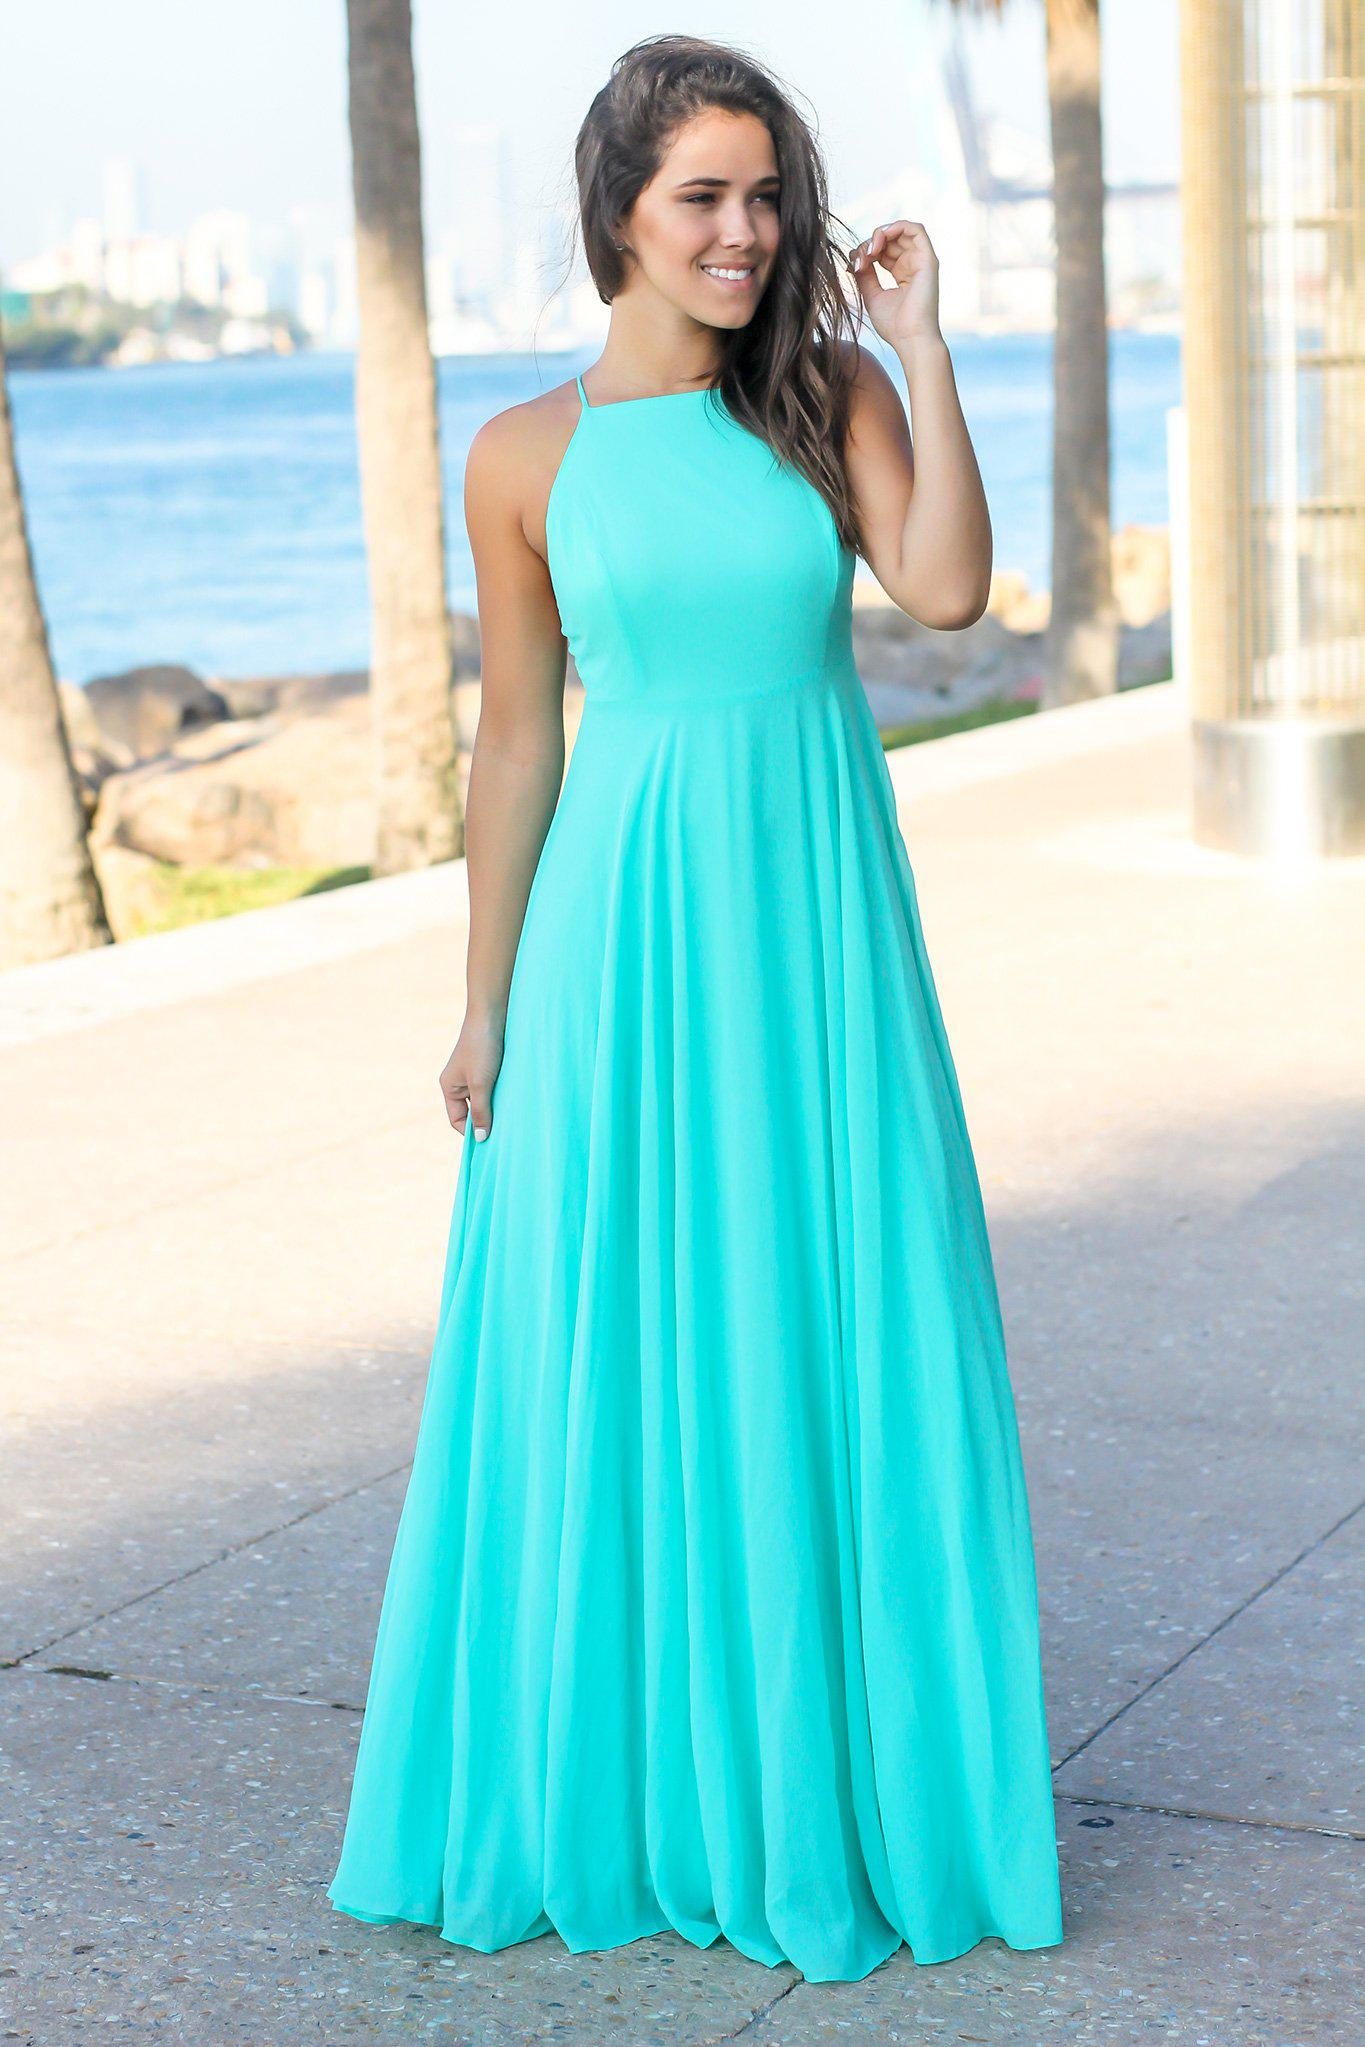 Aqua Maxi Dress with Criss Cross Back